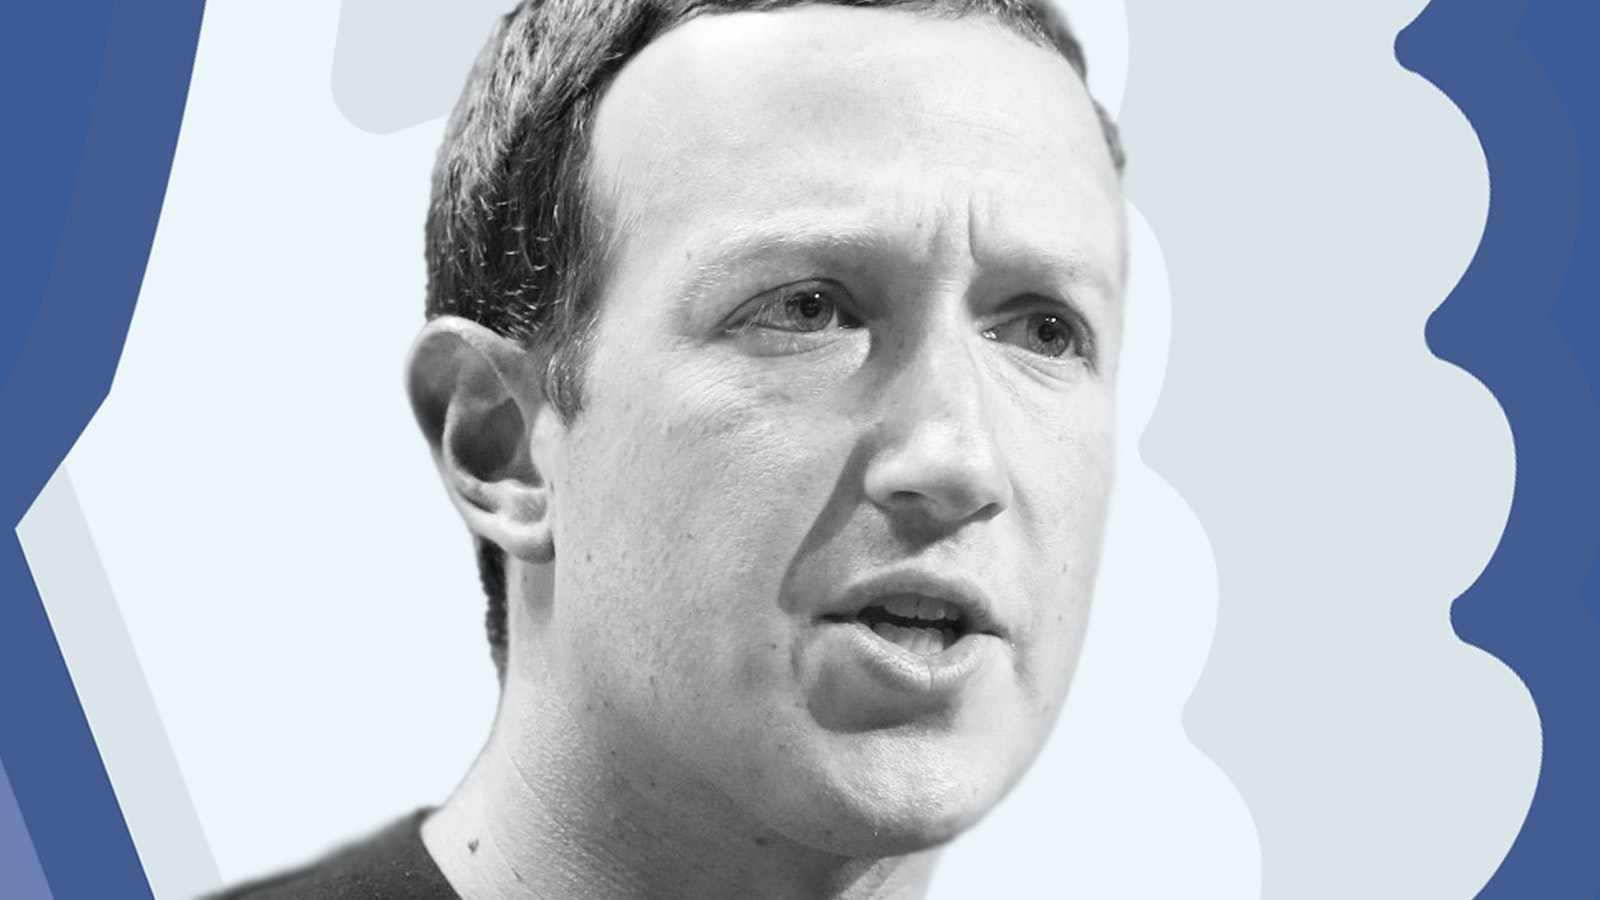 Facebook CEO Mark Zuckerberg. Photo by Bloomberg; art by Mike Sullivan.